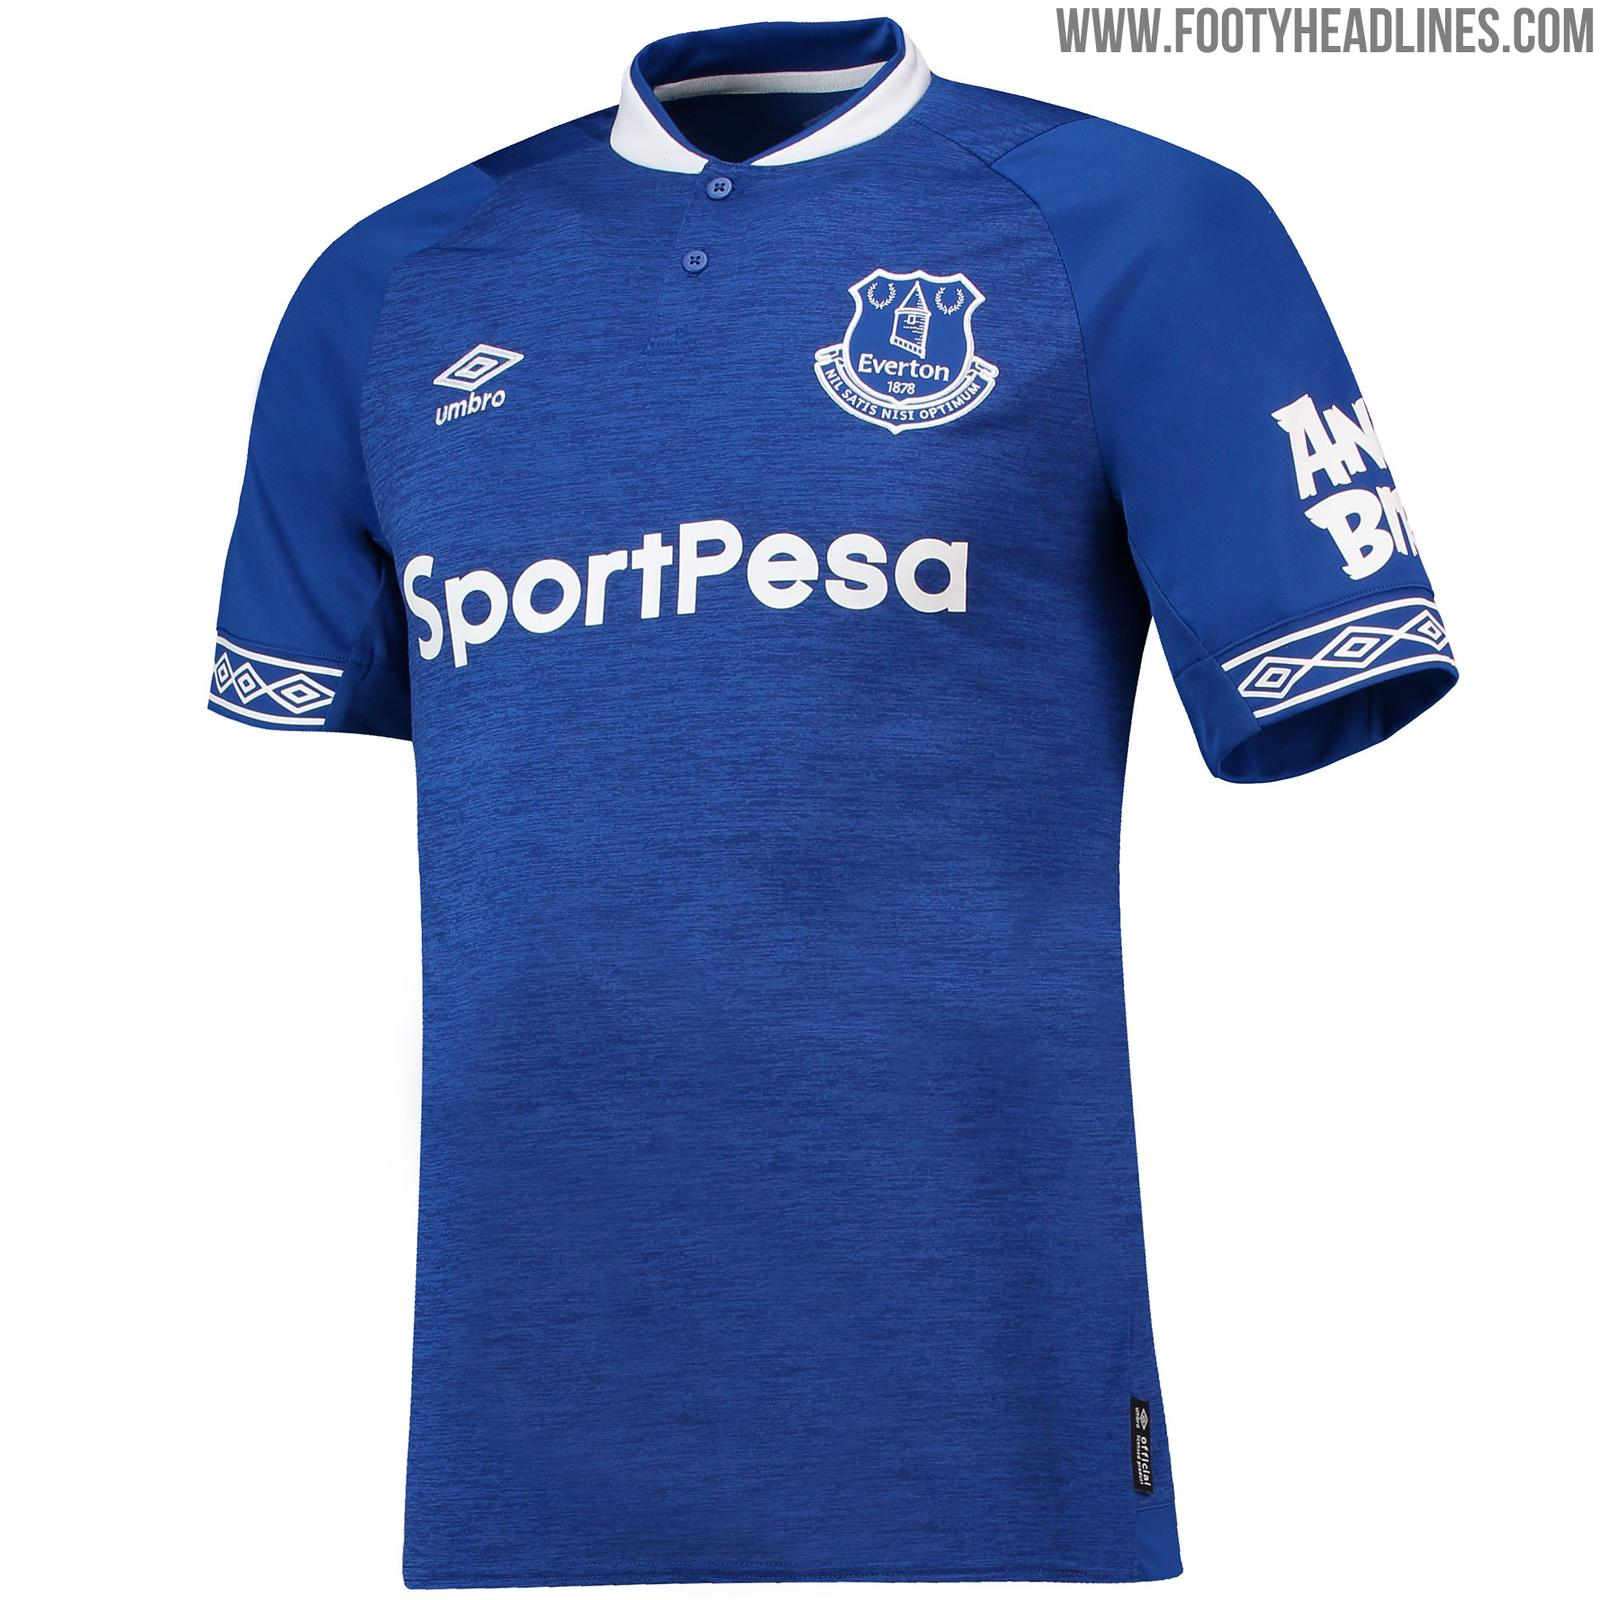 everton-18-19-home-kit-3.jpg